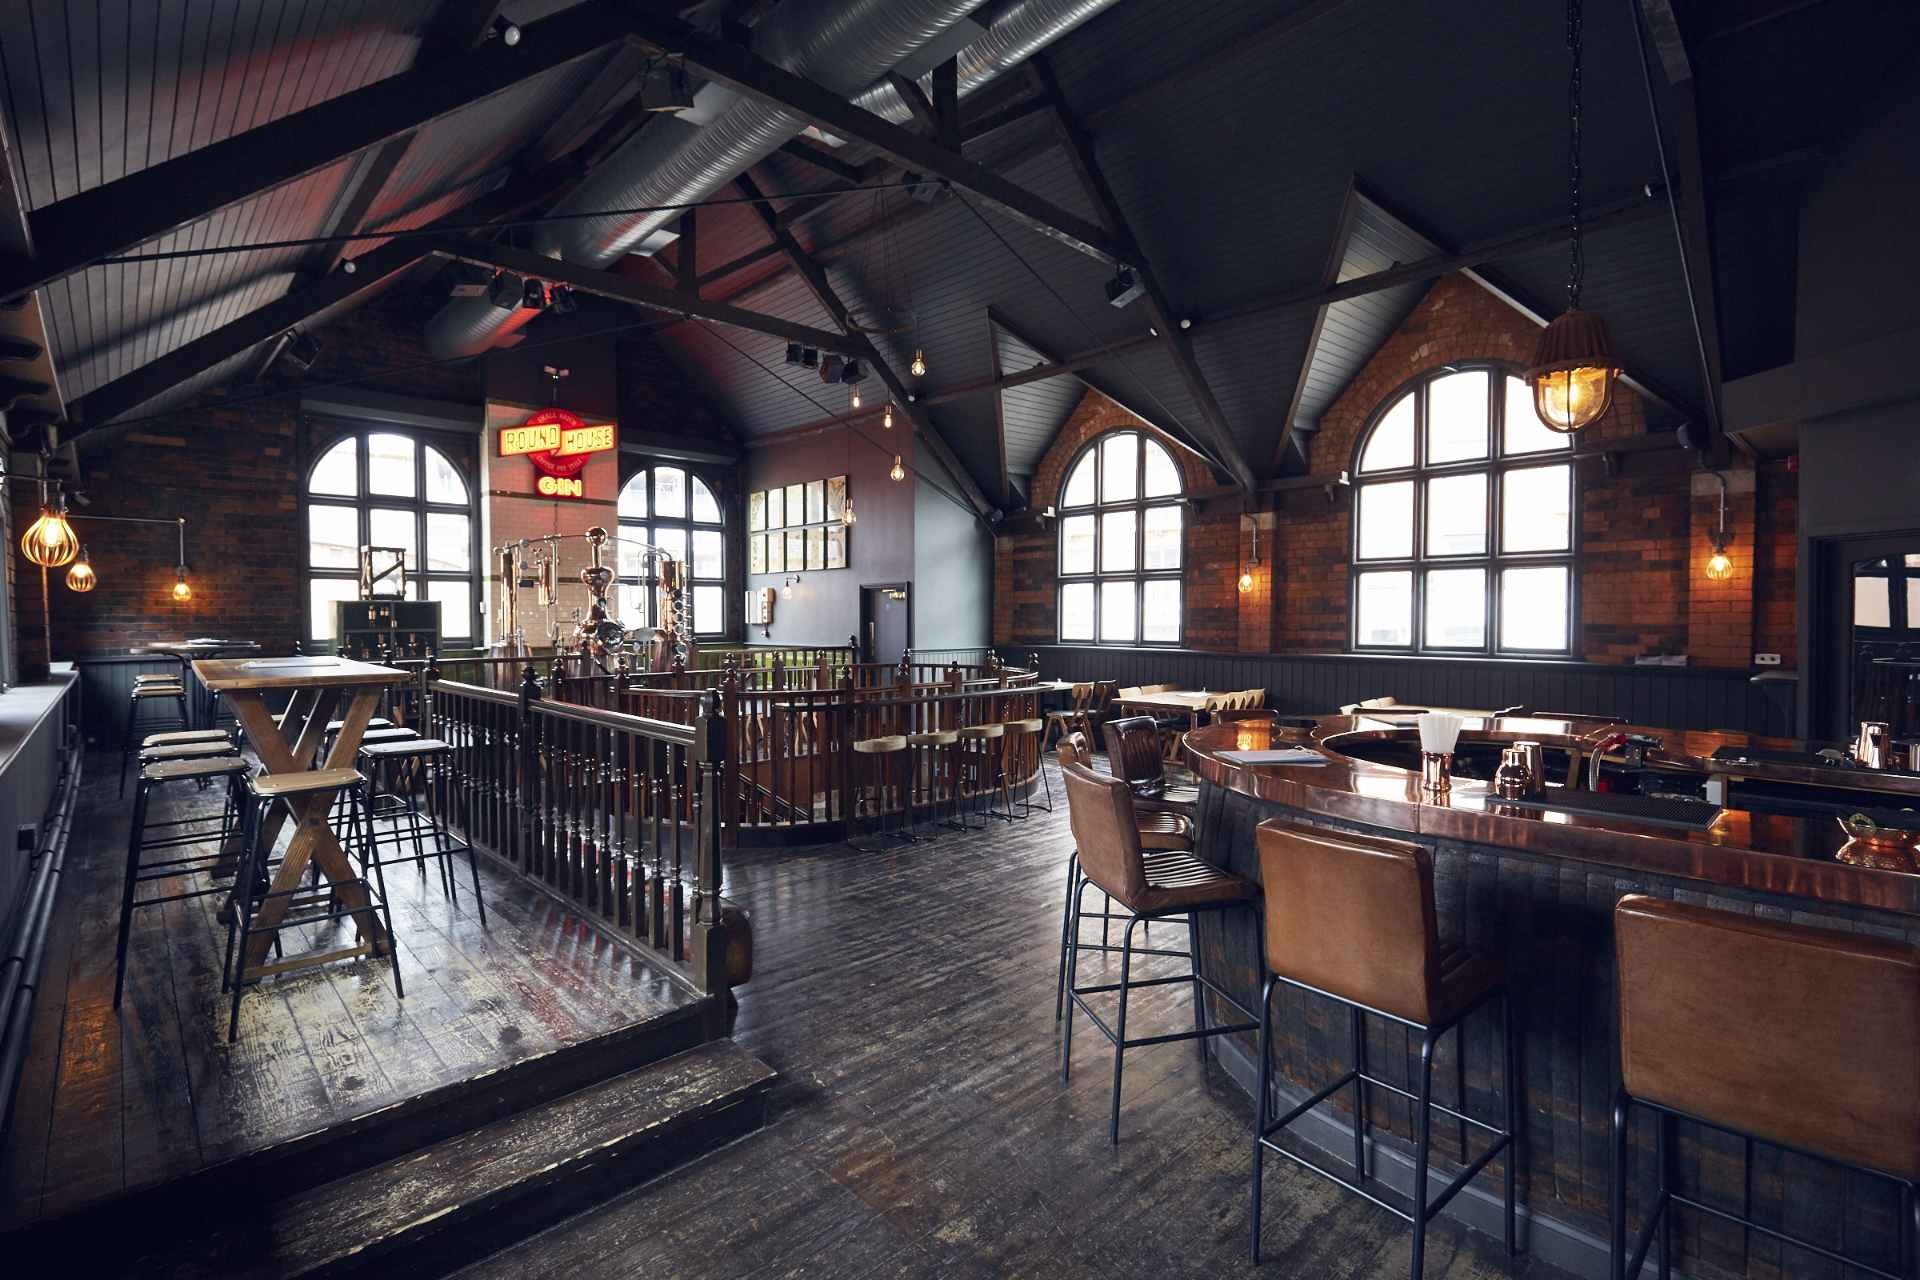 bar-and-restaurant-area-of-the-top-floor-of-the-distillery-bottomless-brunch-birmingham